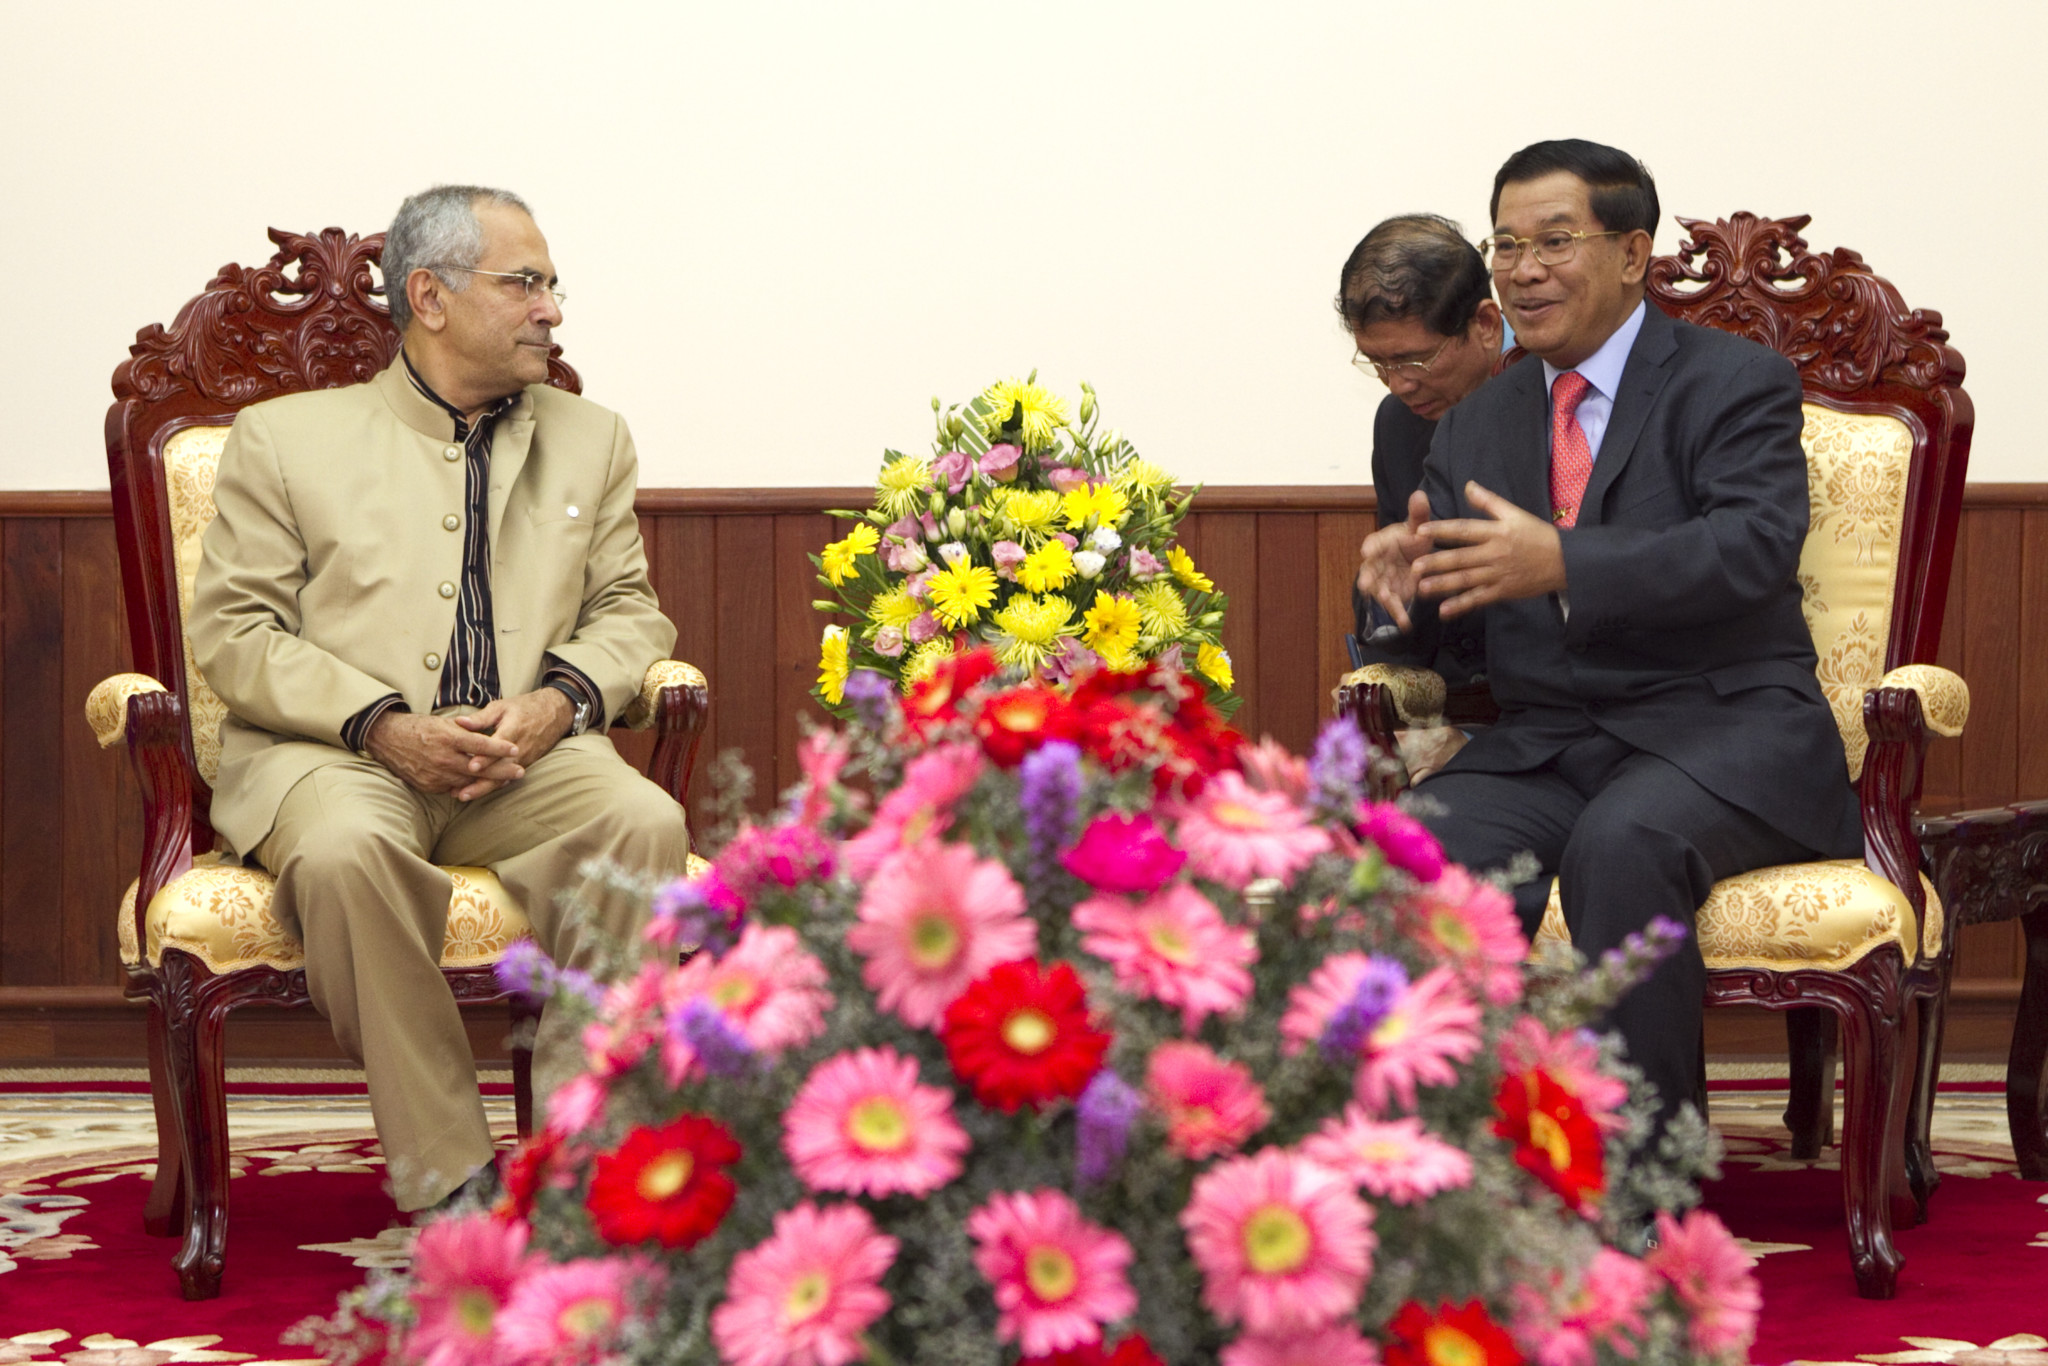 Nobel Peace Laureate HE President Dr. Jose Ramos-Horta with HE Samdech Akka Moha Sena Padei Techo Hun Sen, Prime Minister of Cambodia and Cambodian Chairman of Bridges